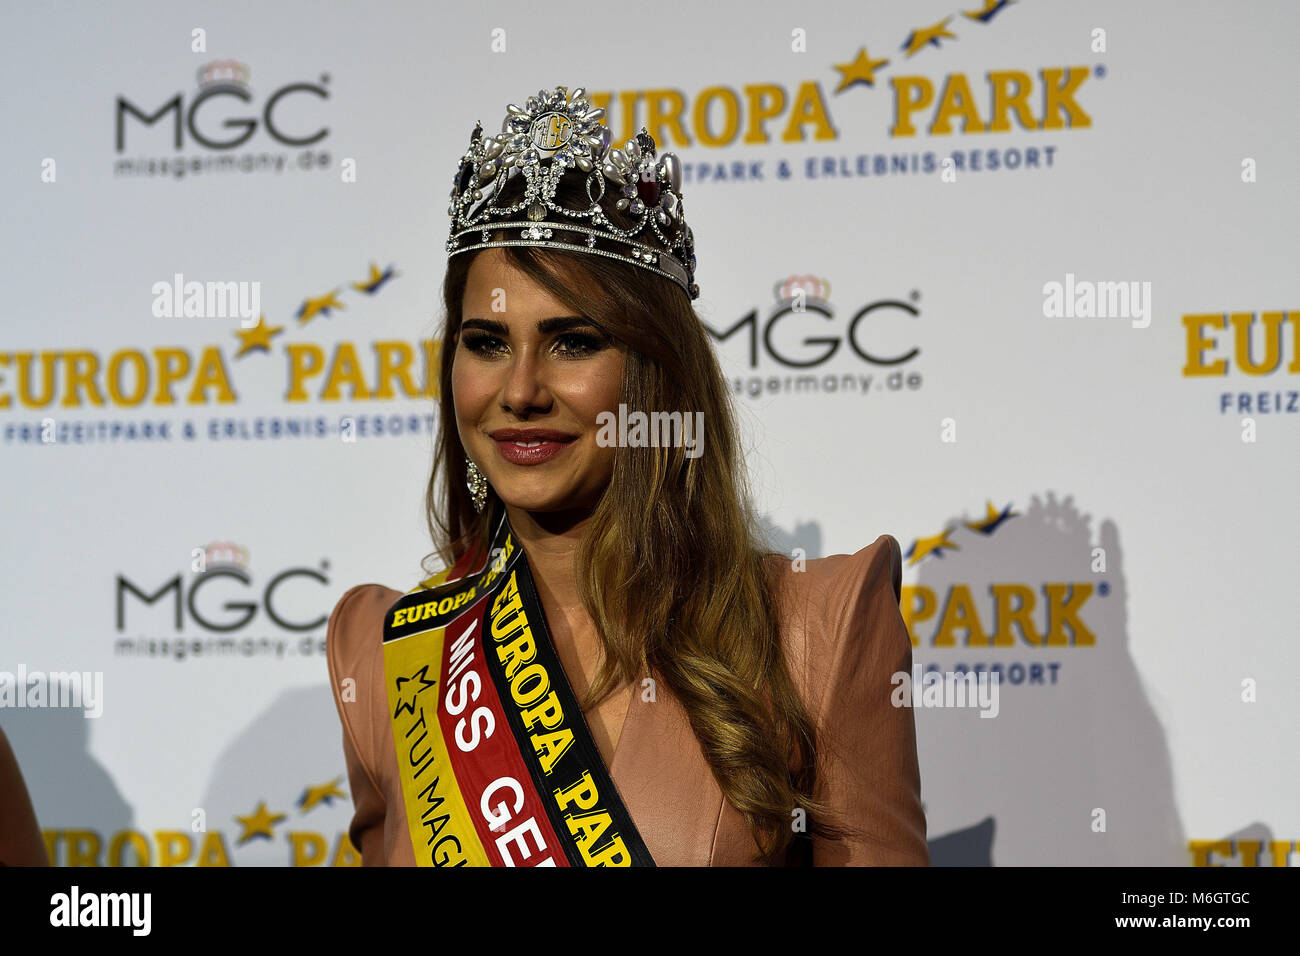 February 24, 2018 - The newly elected Miss Germany, Anahita Rehbein, delivers a press conference to media representatives - Stock Image